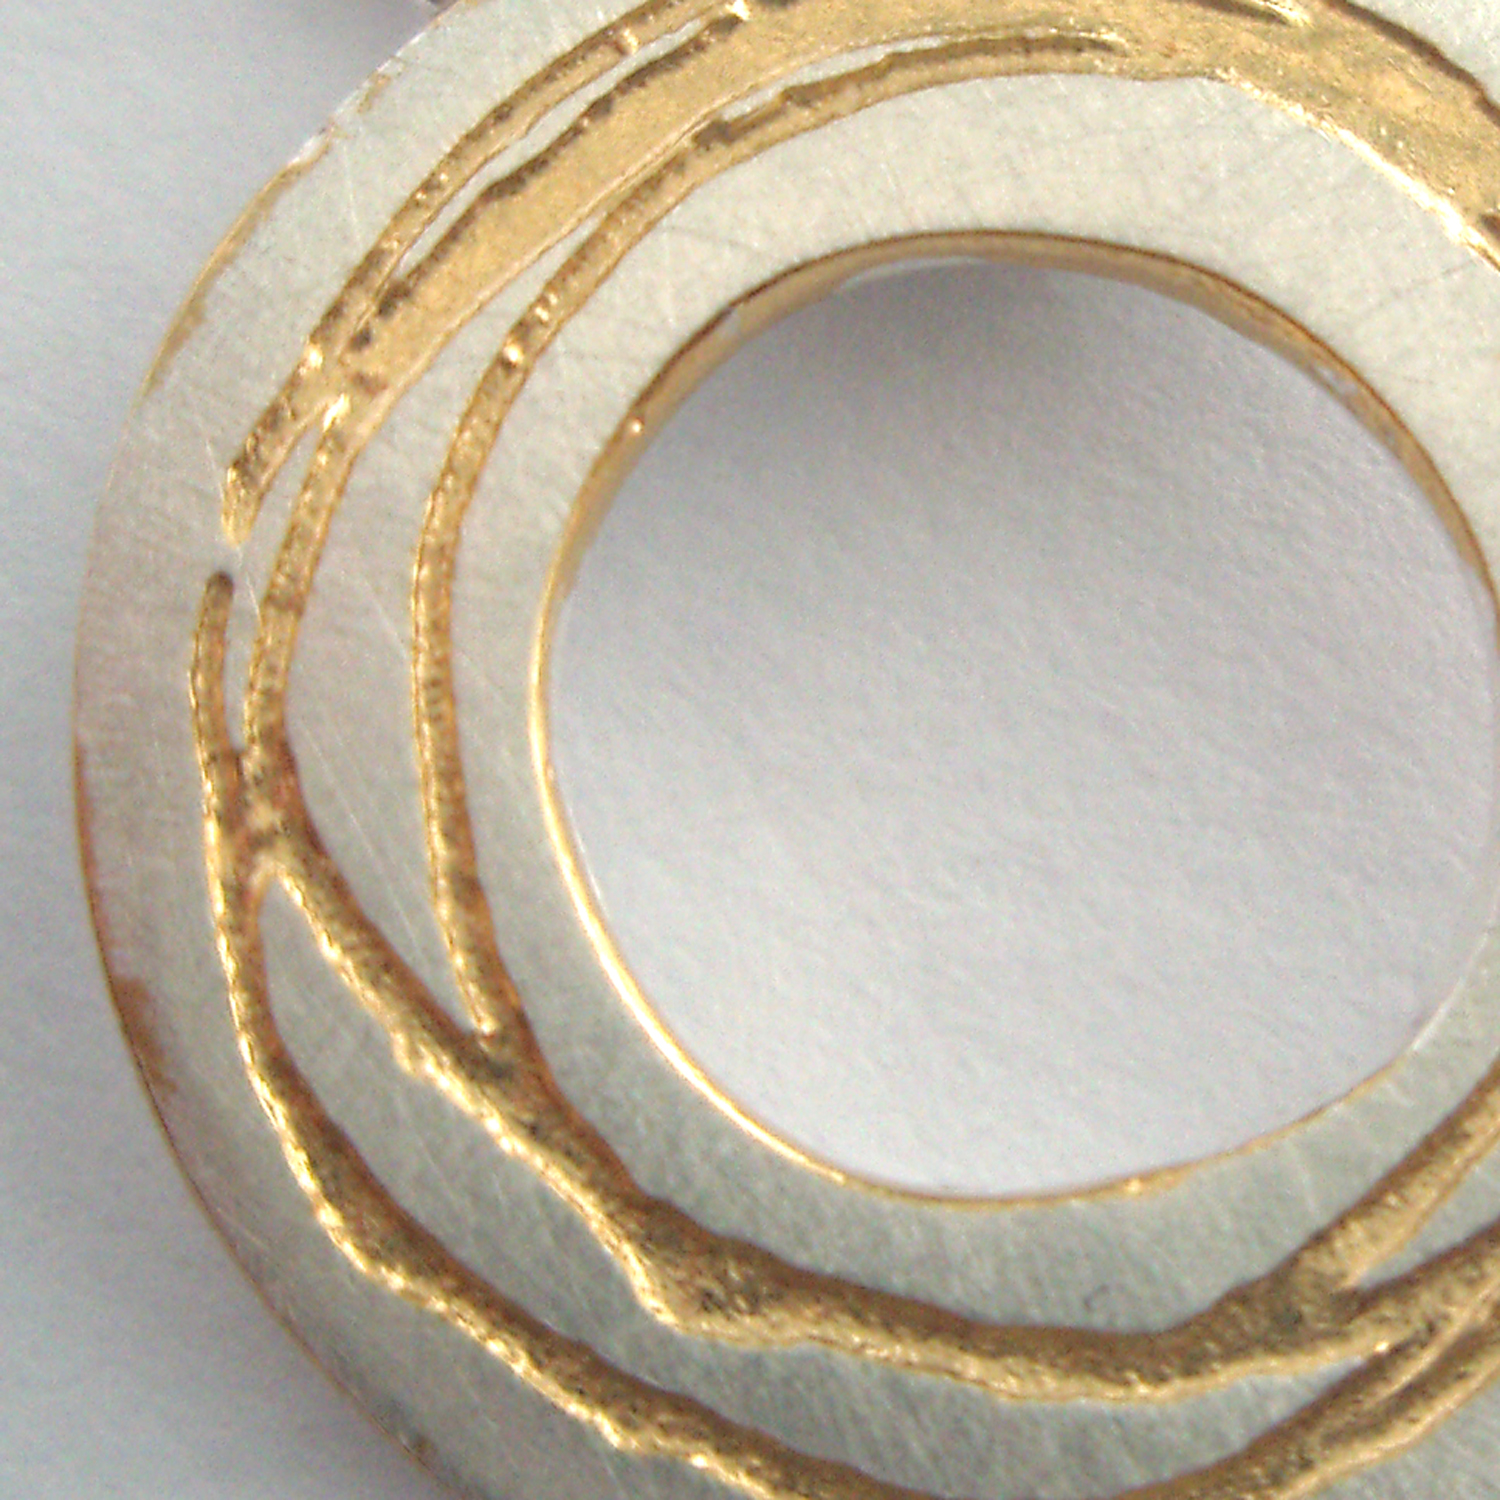 Spiral Etched Silver Pendant With Gold Plate